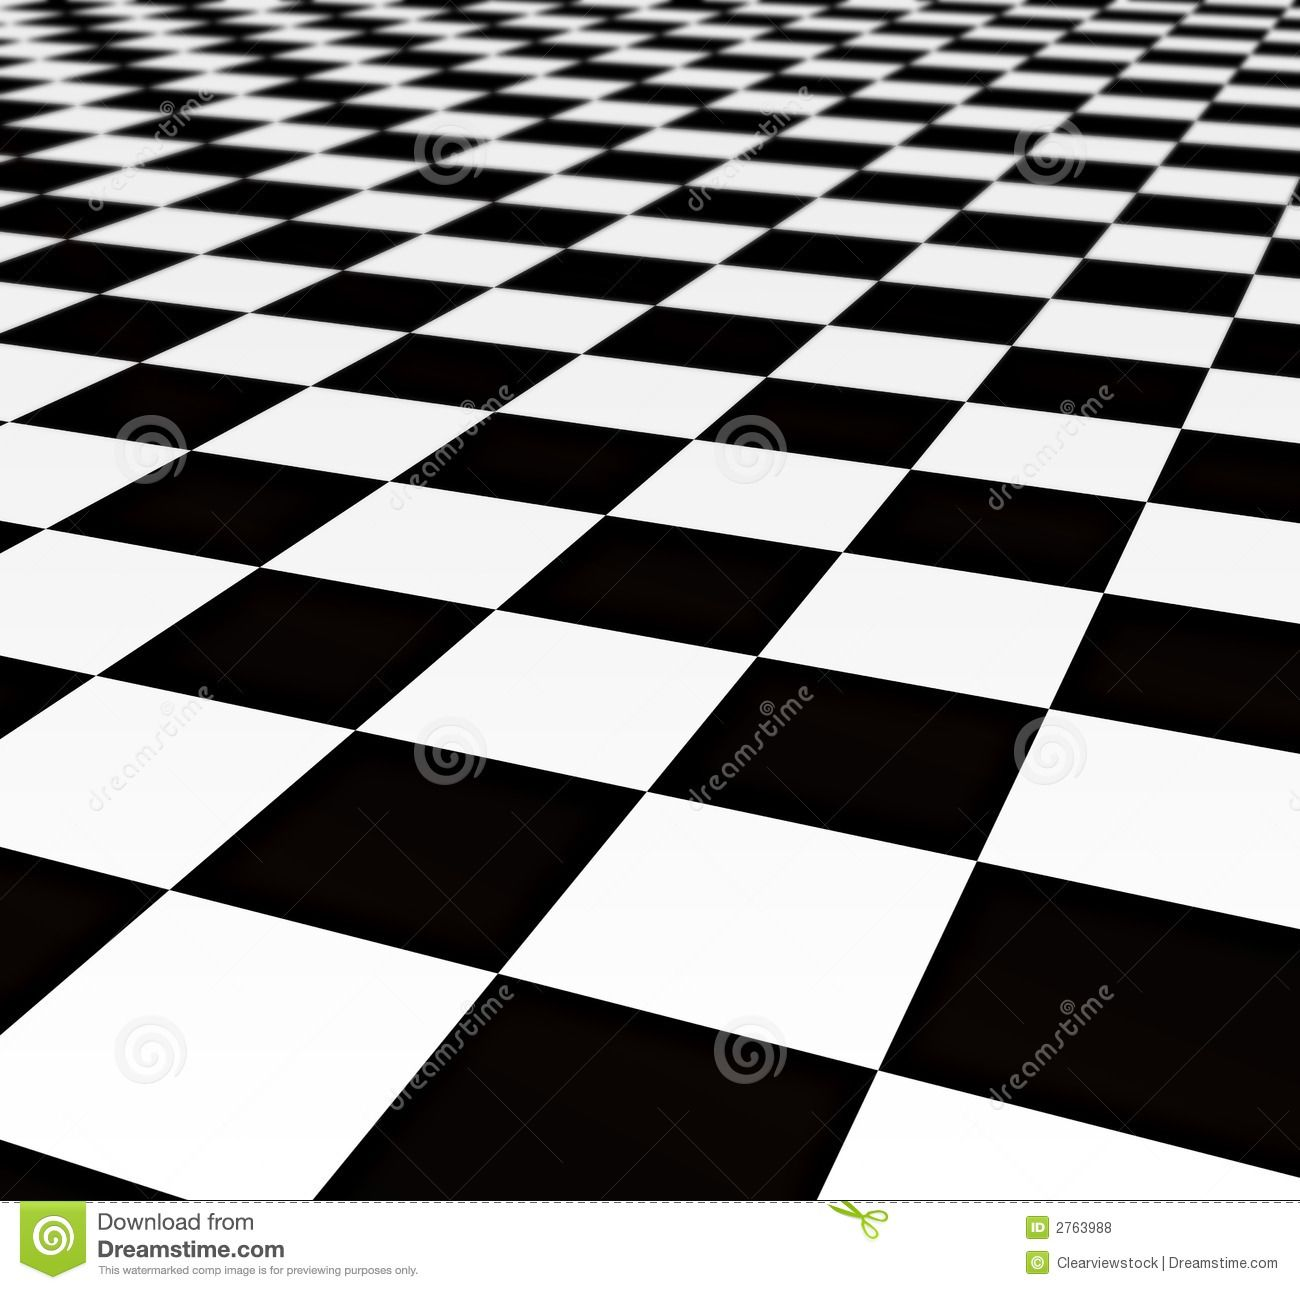 Black and White Check Floor | LEGALLY BLONDE | Pinterest | Legally ...